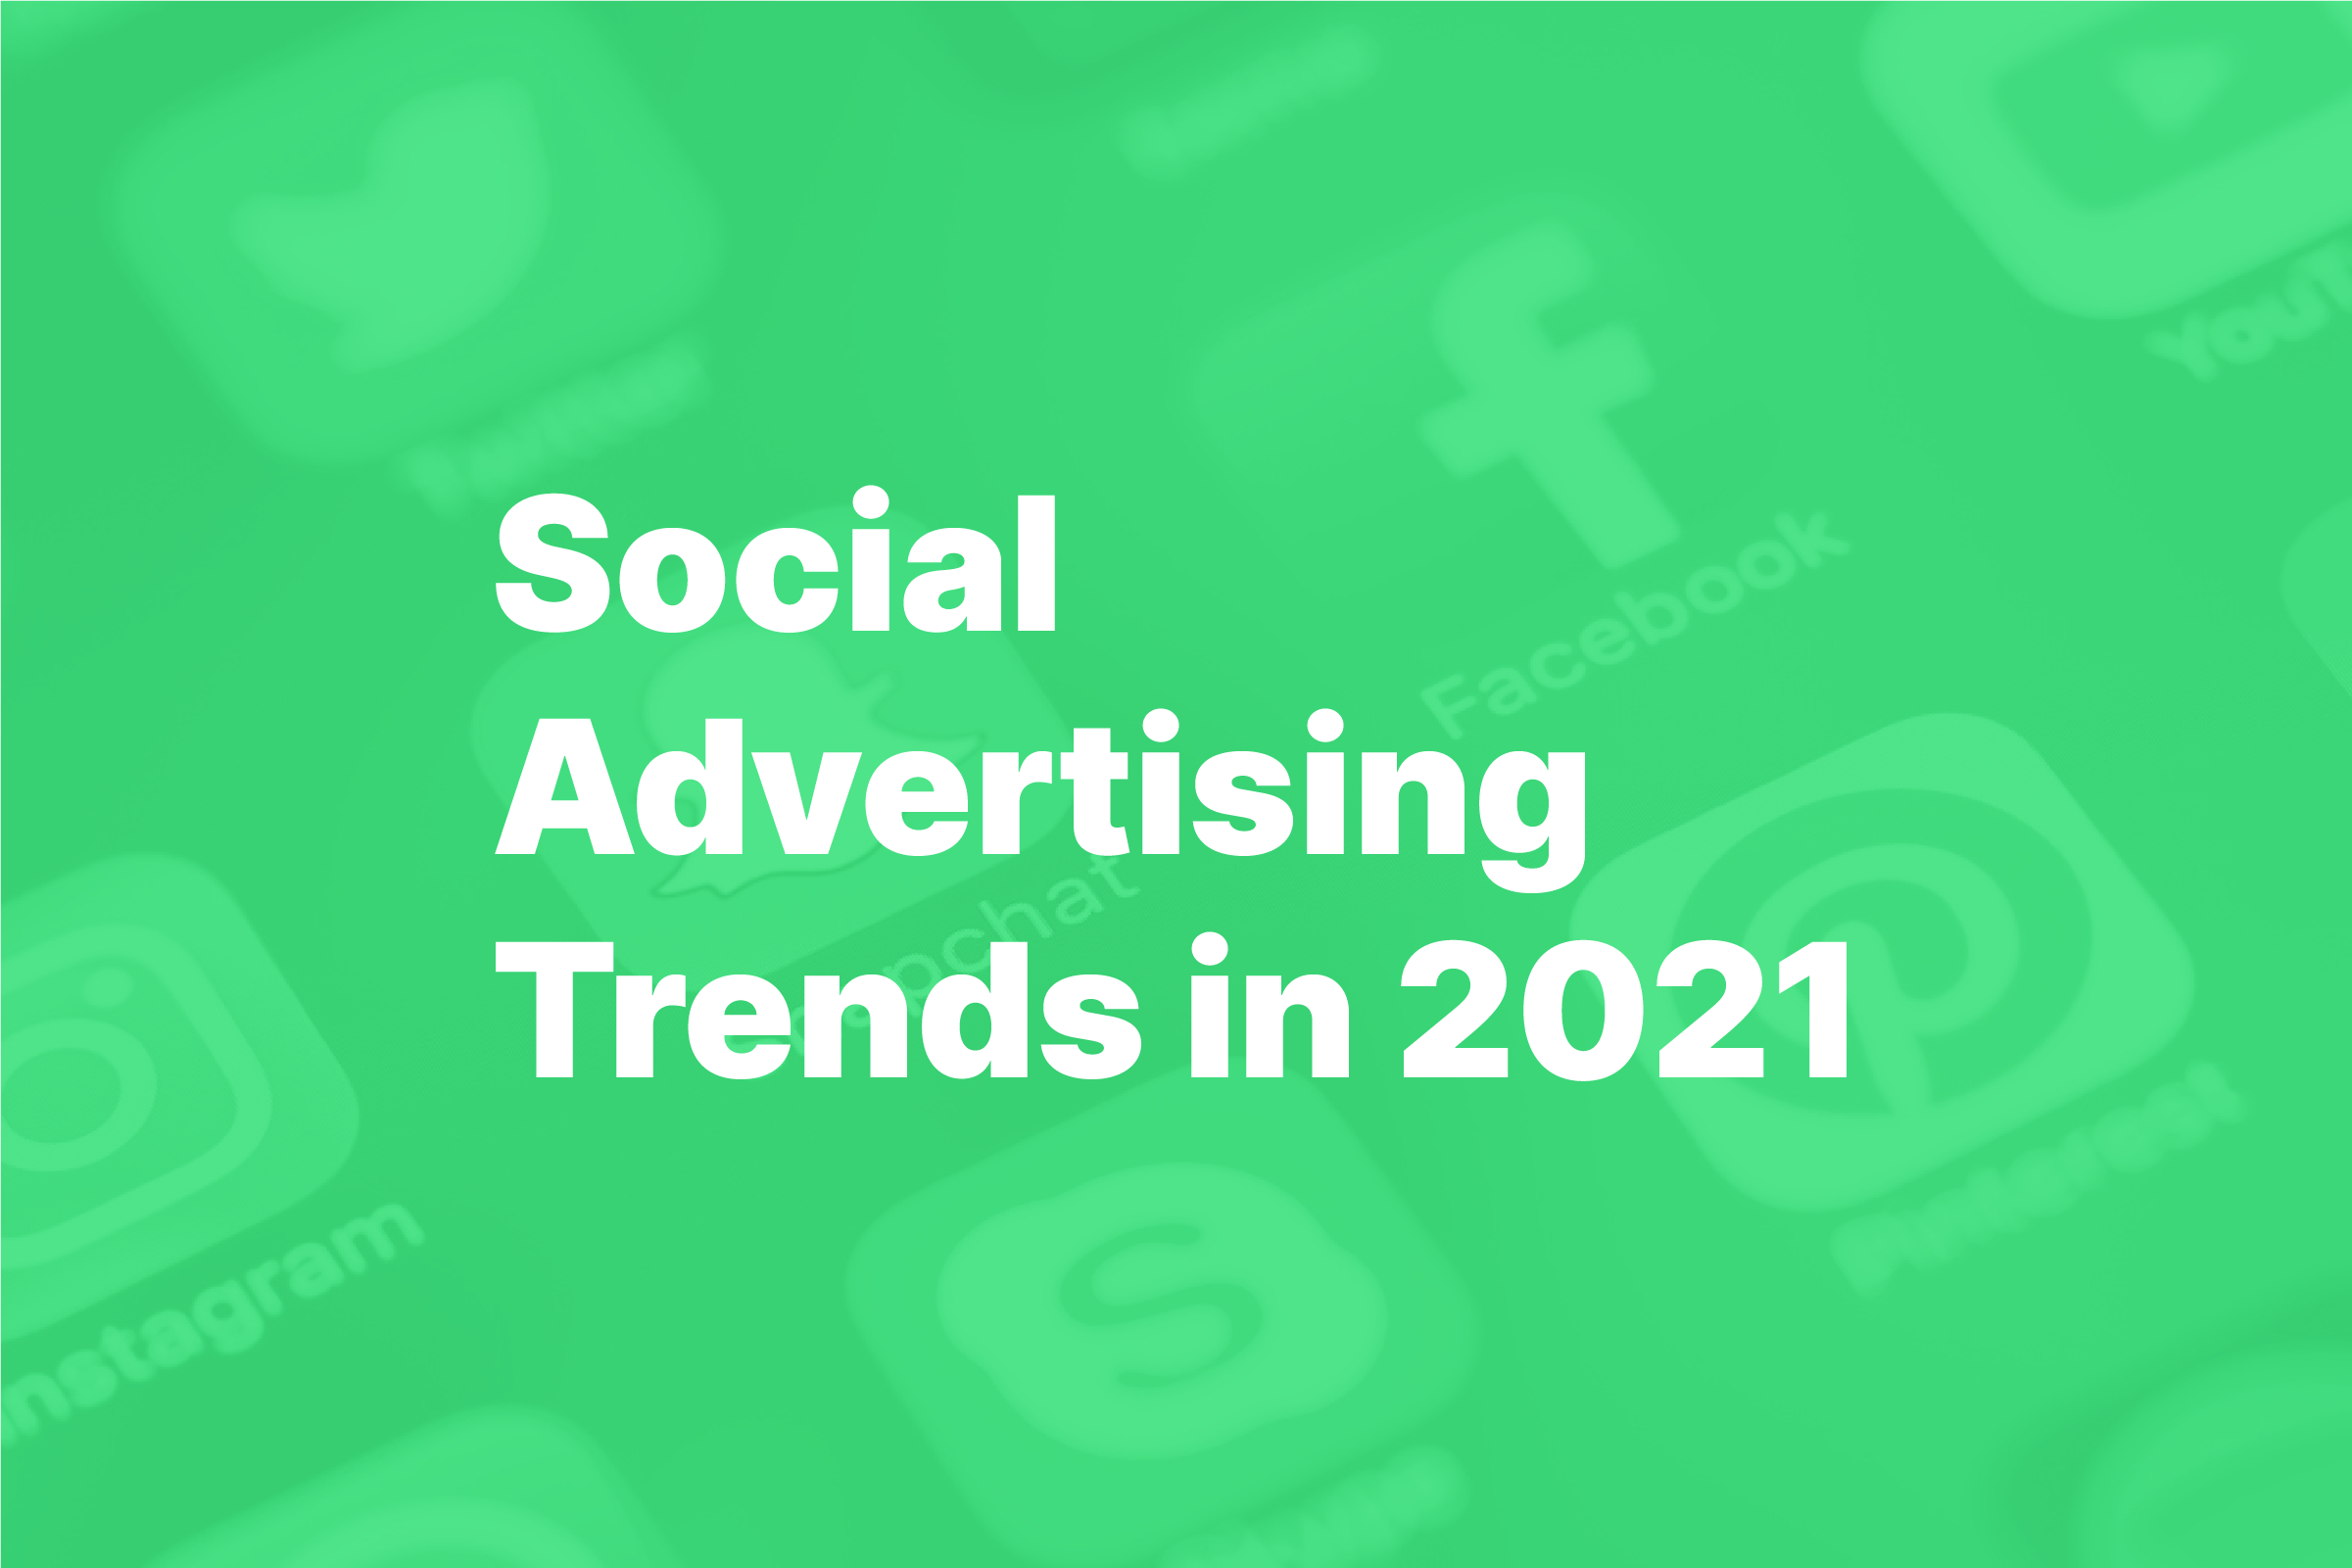 What we learned about Social Advertising in 2020, and what trends will emerge in 2021